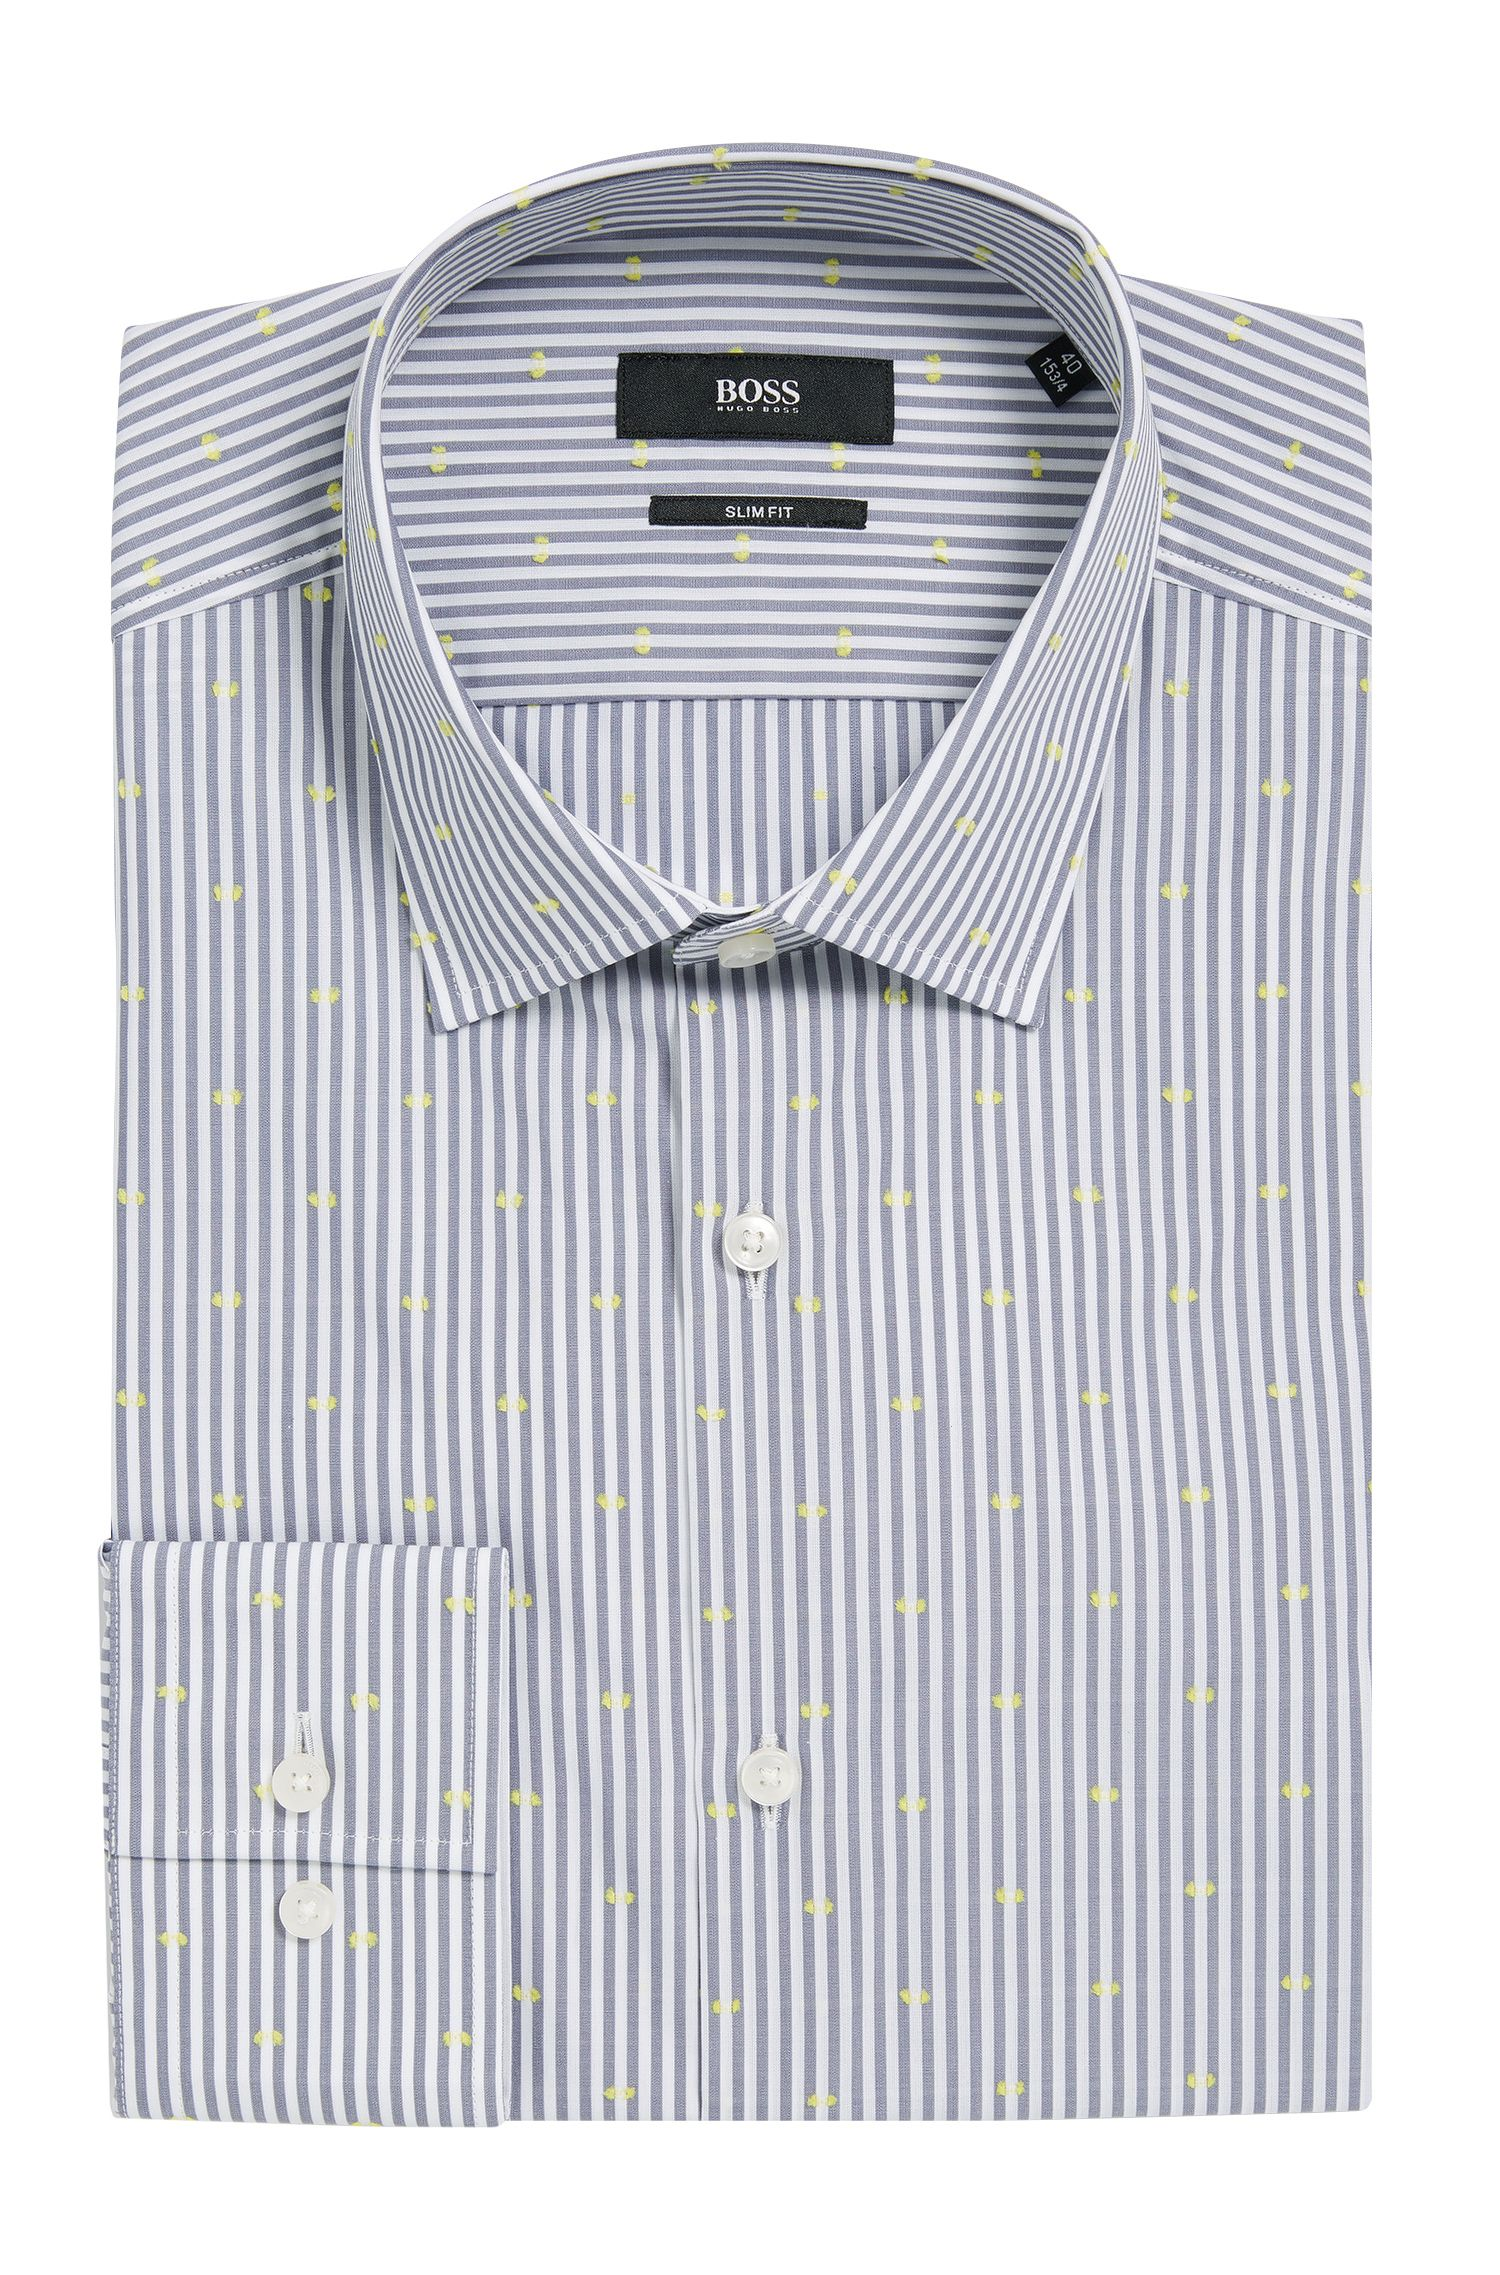 'Jenno' | Slim Fit, Cotton Contrast Textured Dress Shirt